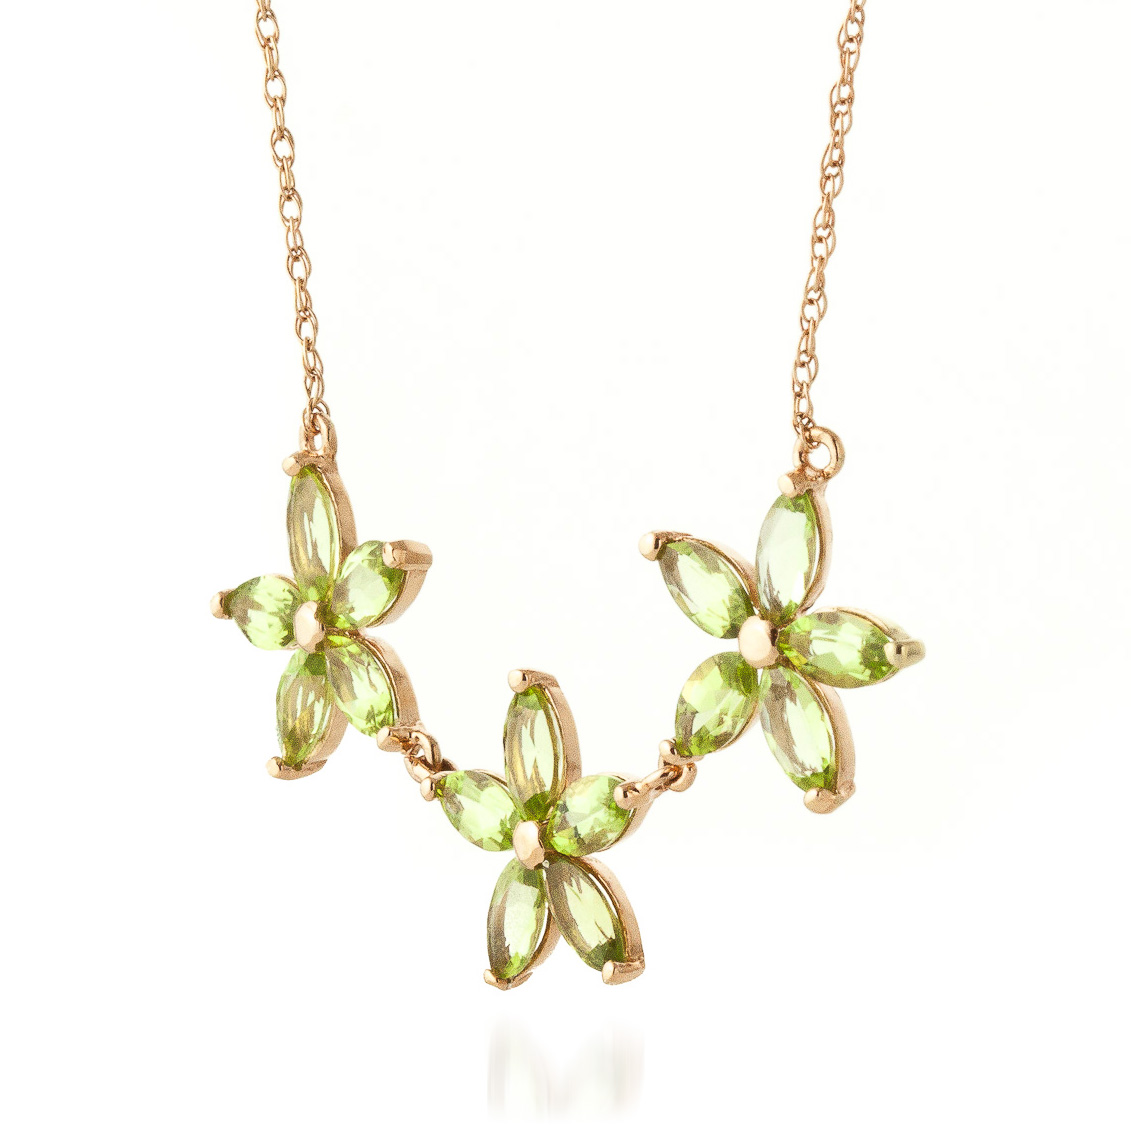 Marquise Cut Peridot Pendant Necklace 4.2ct in 14K Rose Gold